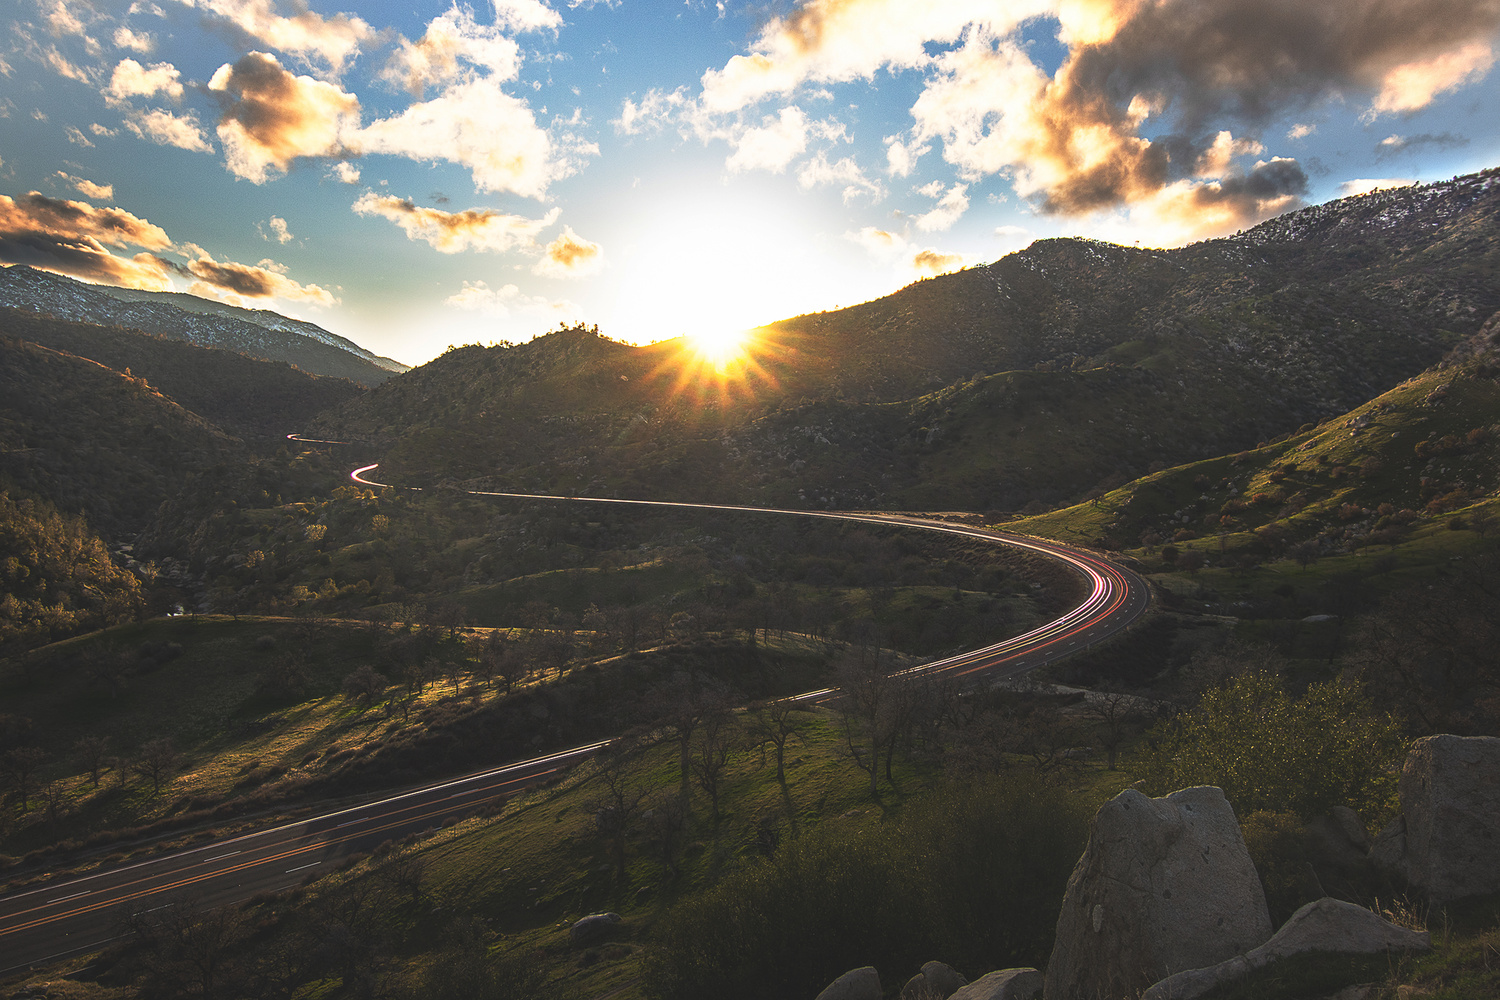 The Drive Home by Michael Auffant